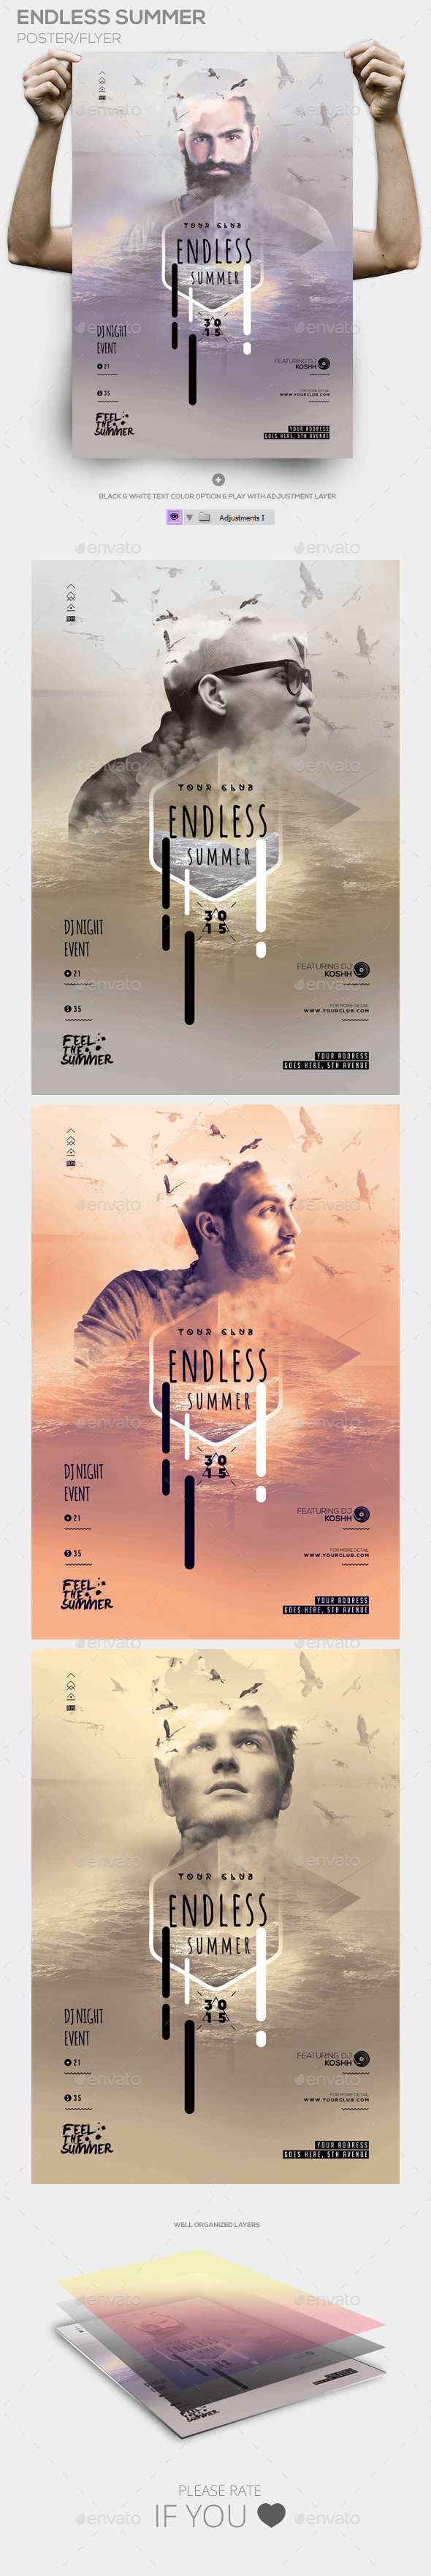 GraphicRiver Endless Summer Poster PSD Template 11795181